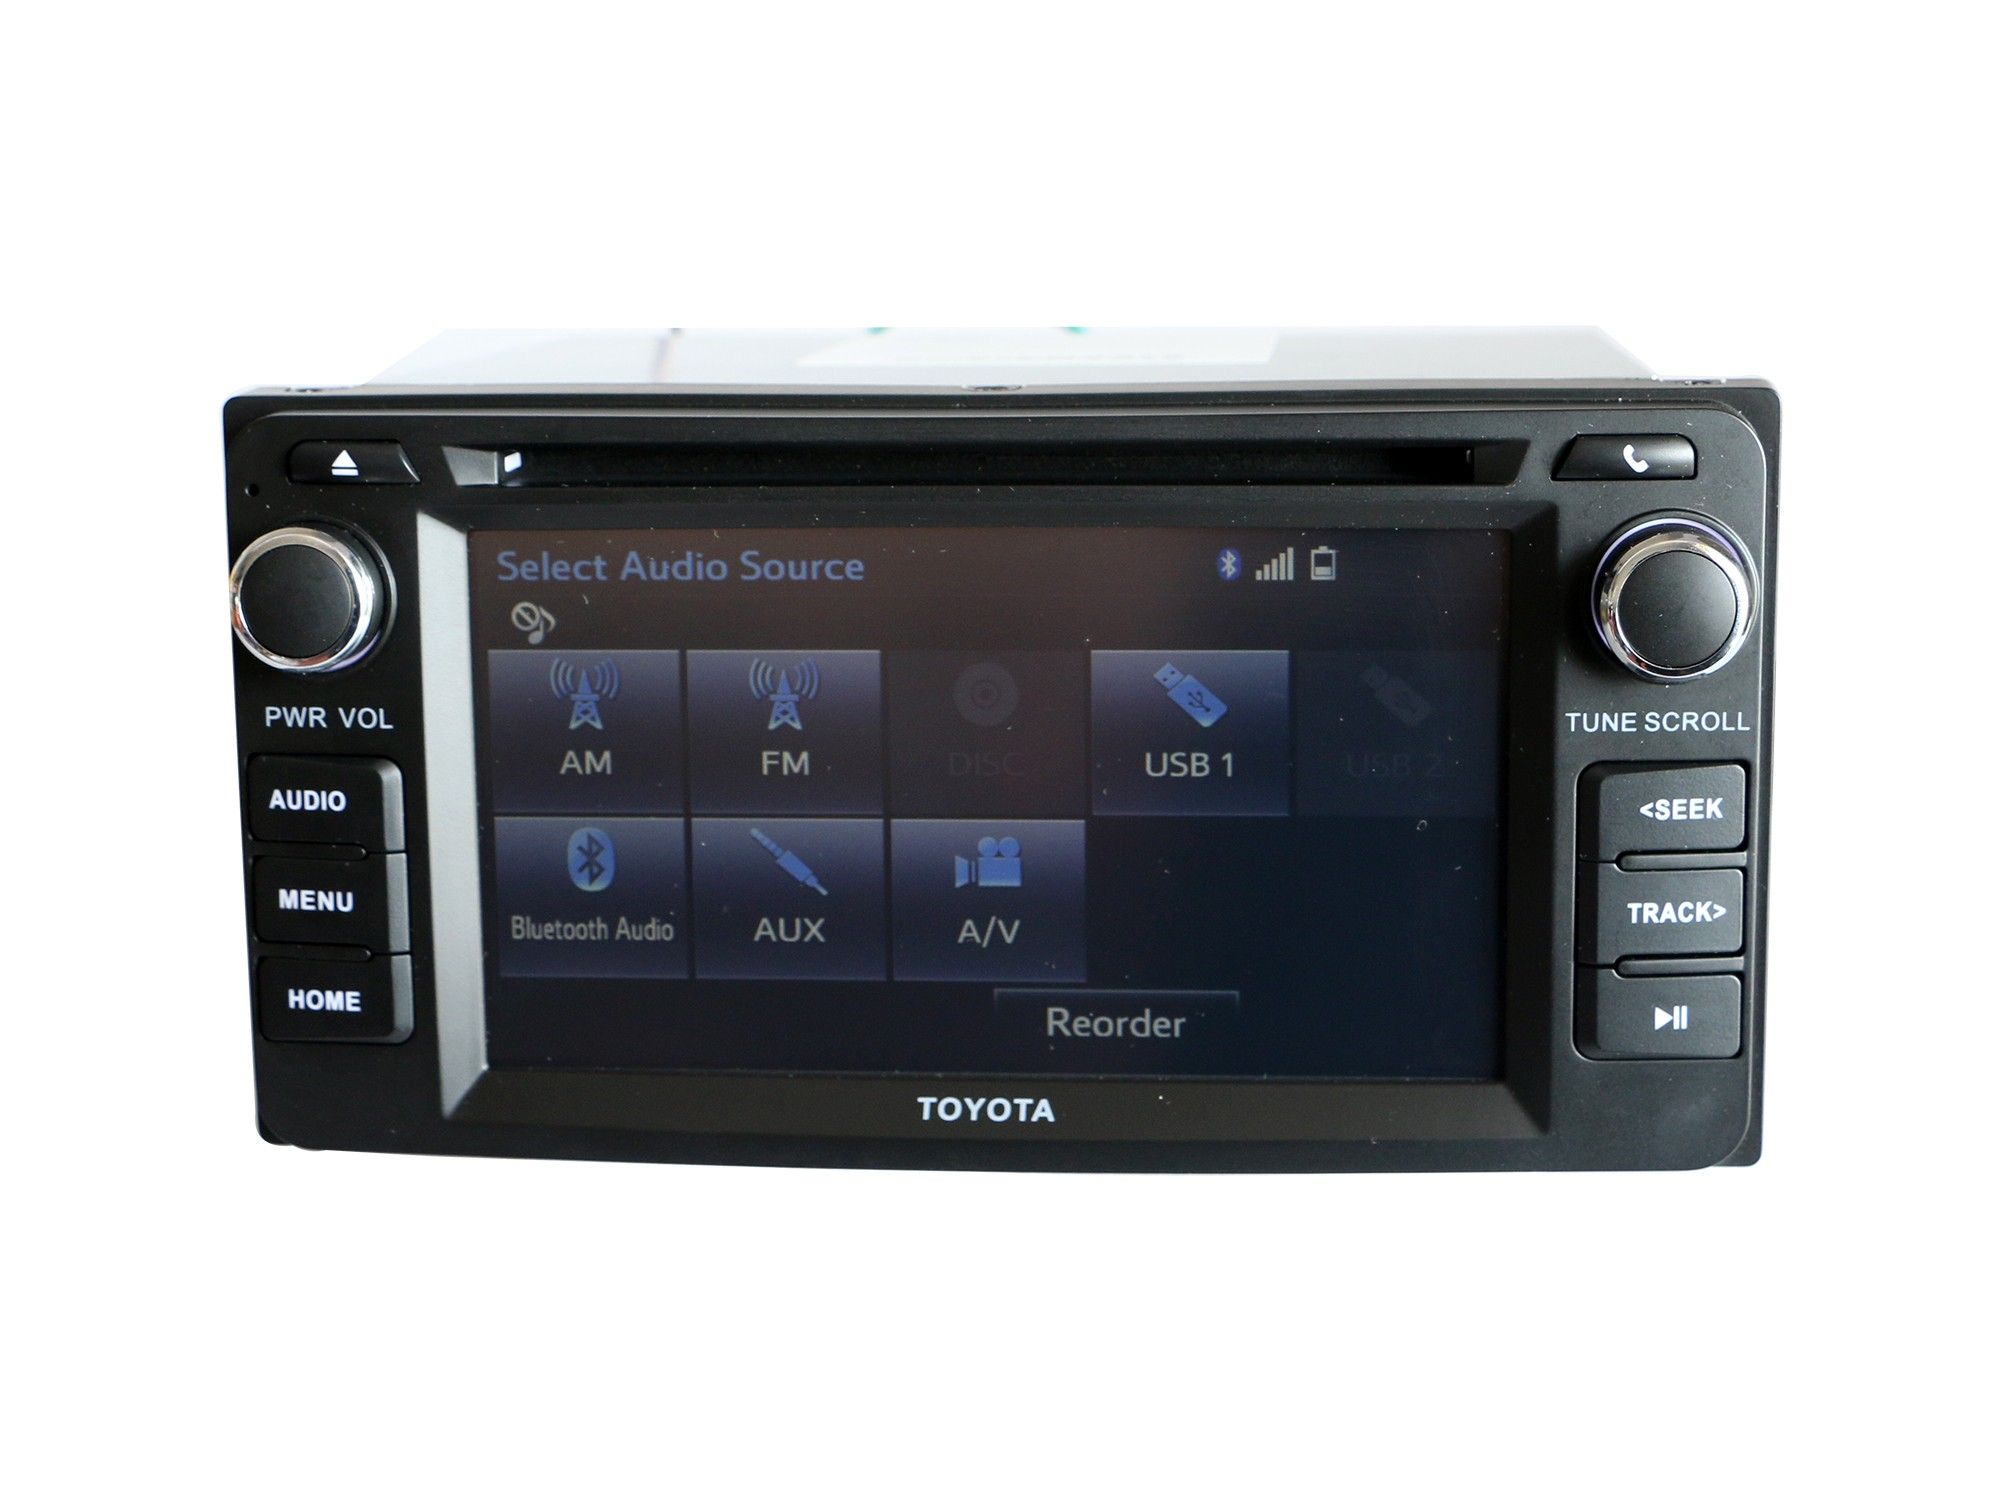 toyota corolla ex cd player stereo radio bluetooth rear. Black Bedroom Furniture Sets. Home Design Ideas